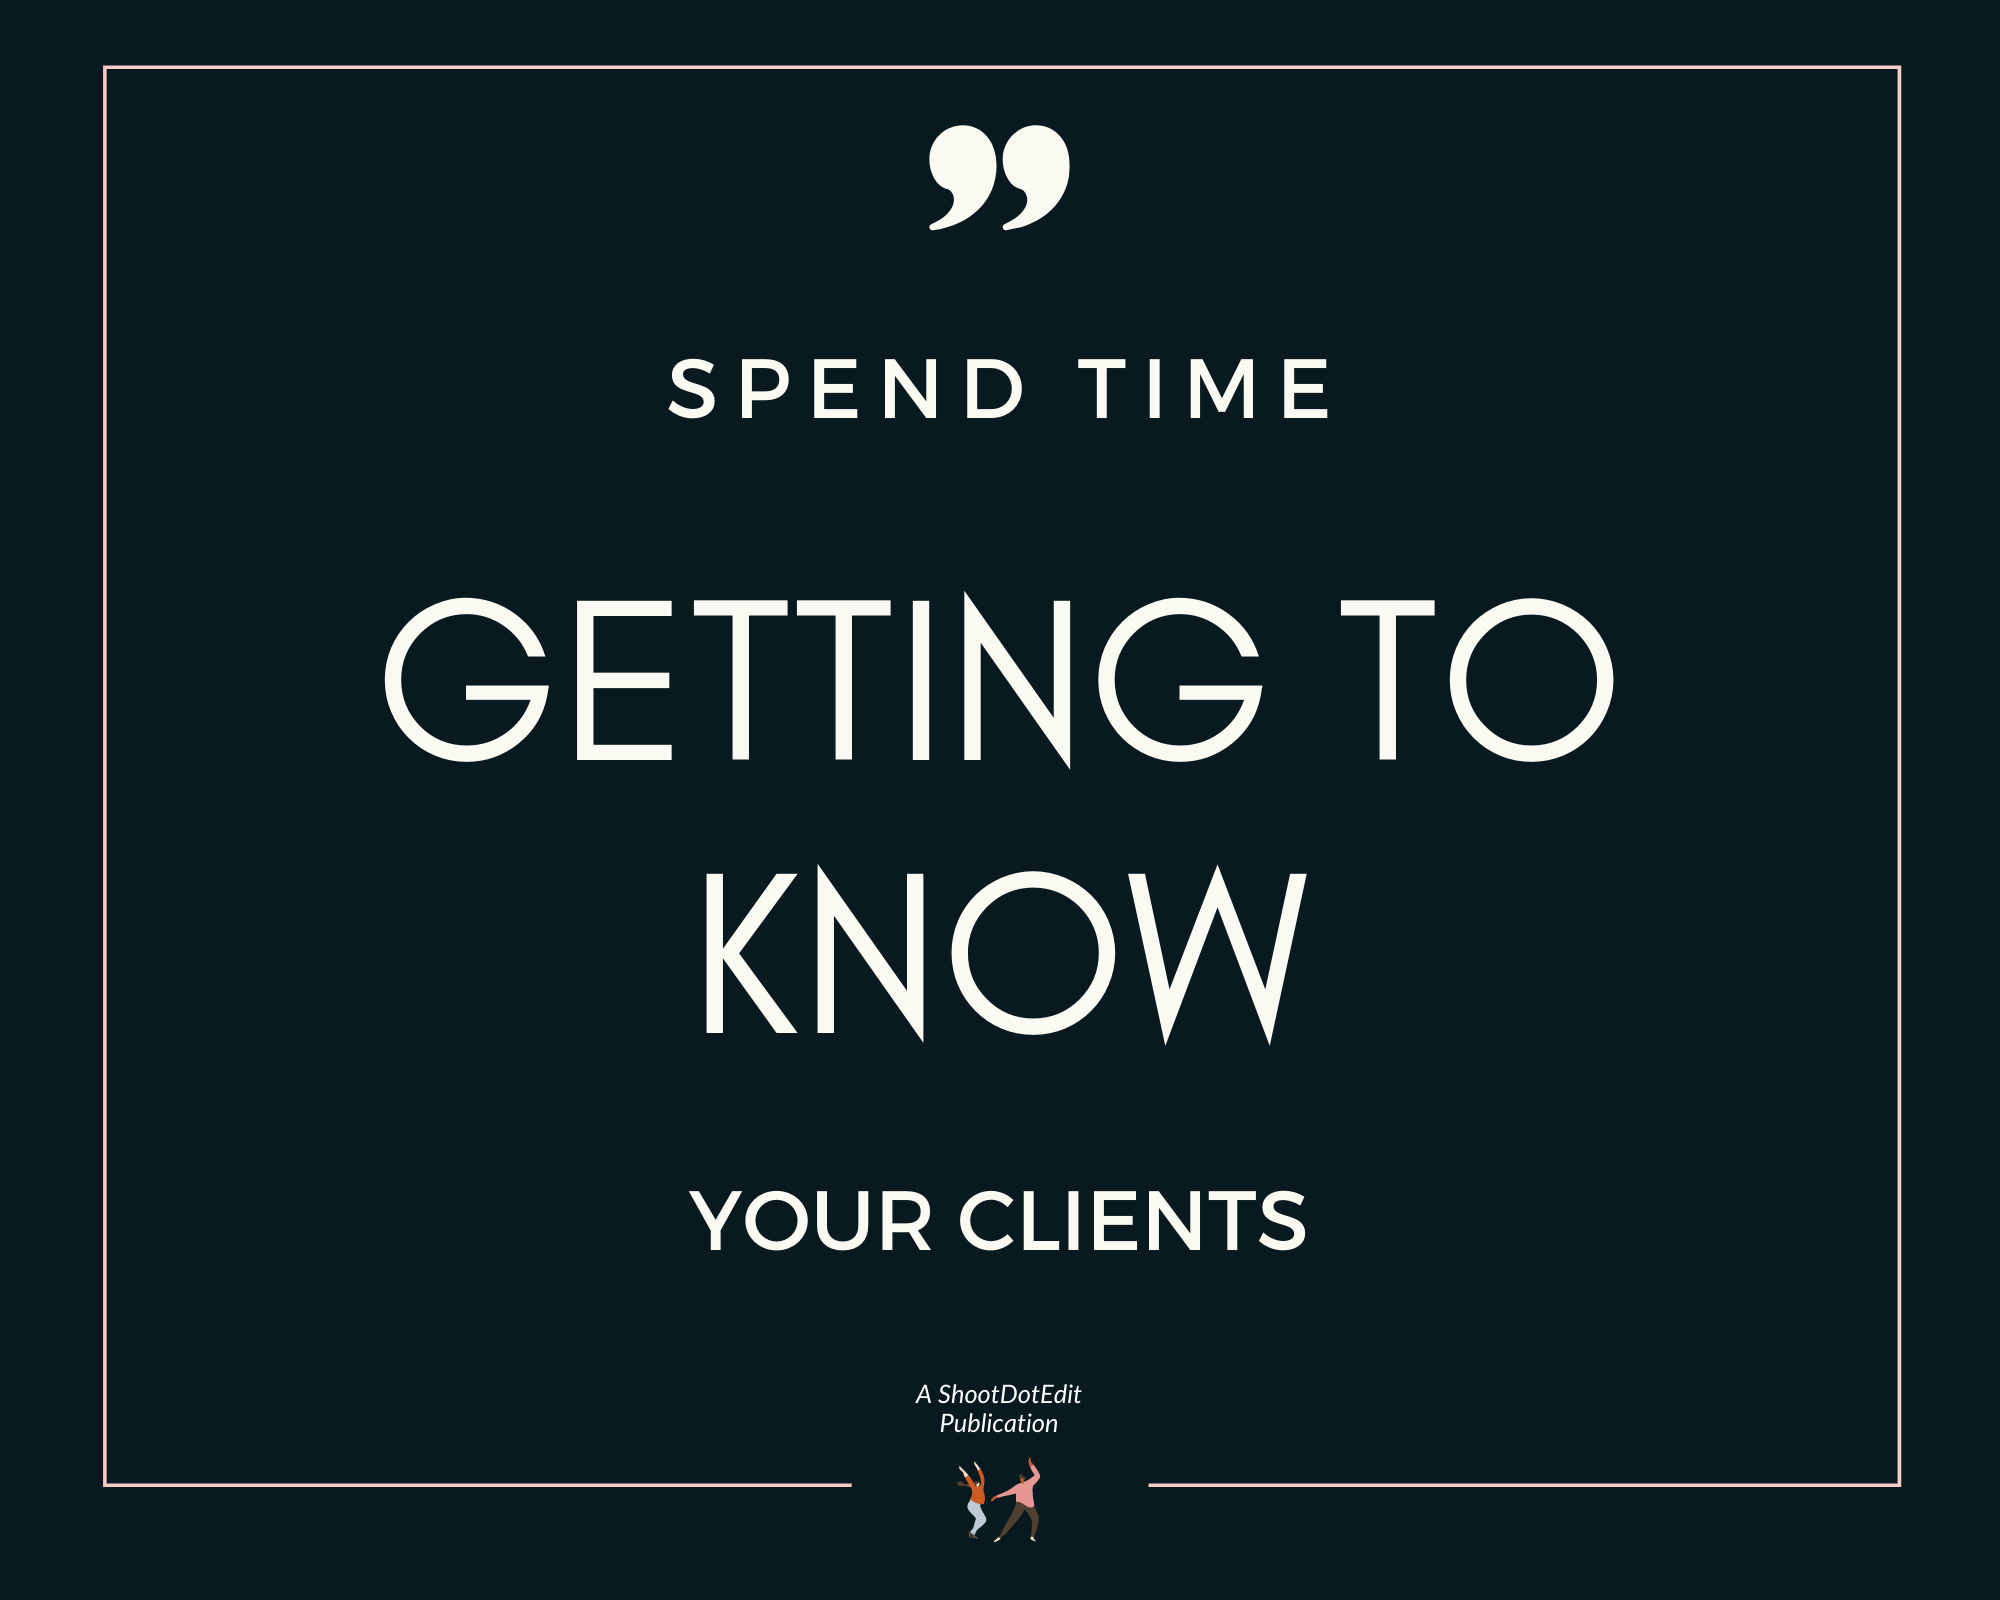 Infographic stating Spend time getting to know your clients